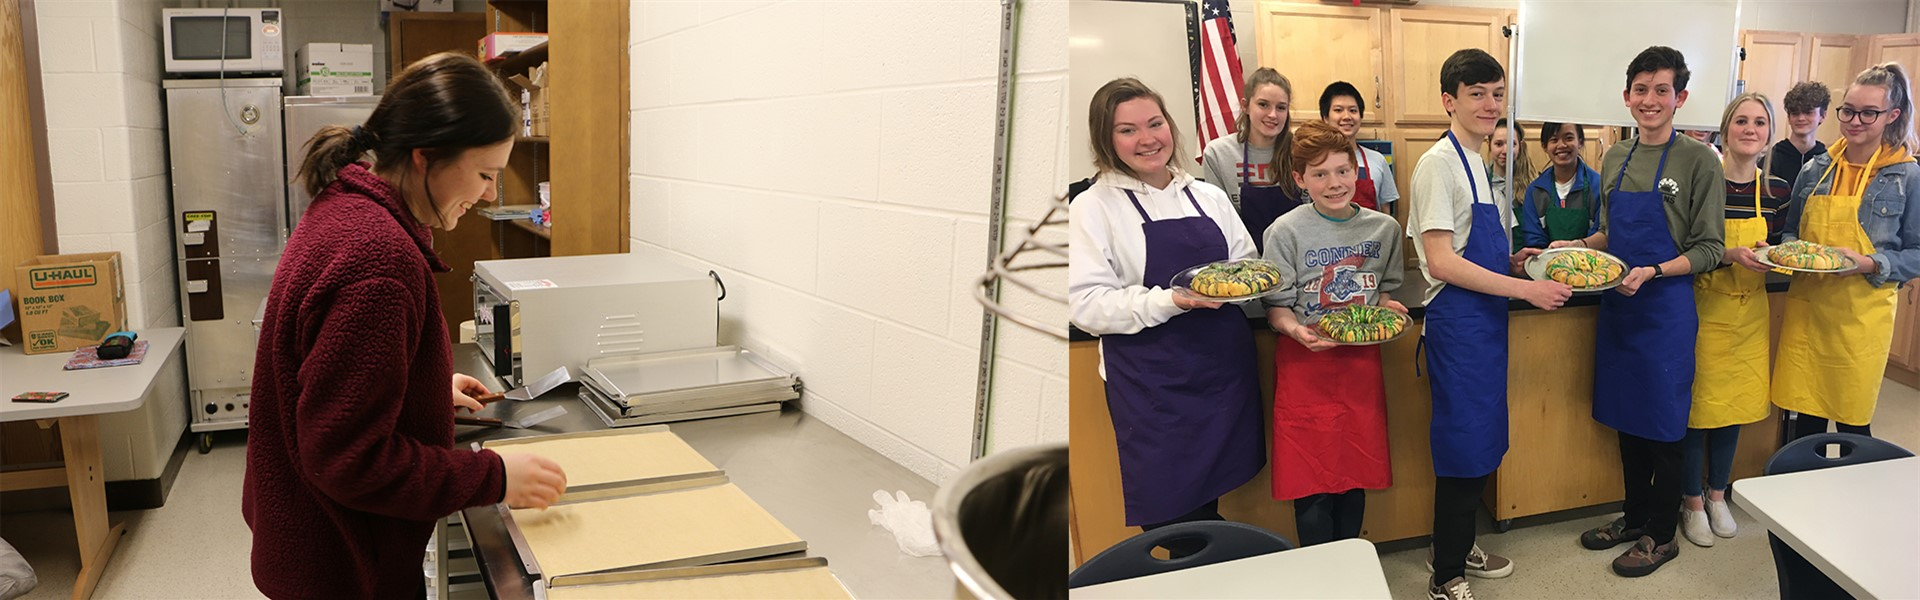 Ms. Cox's Advanced Foods & Nutrition make King Cake after learning about the culture and cuisine of New Orleans/Louisiana